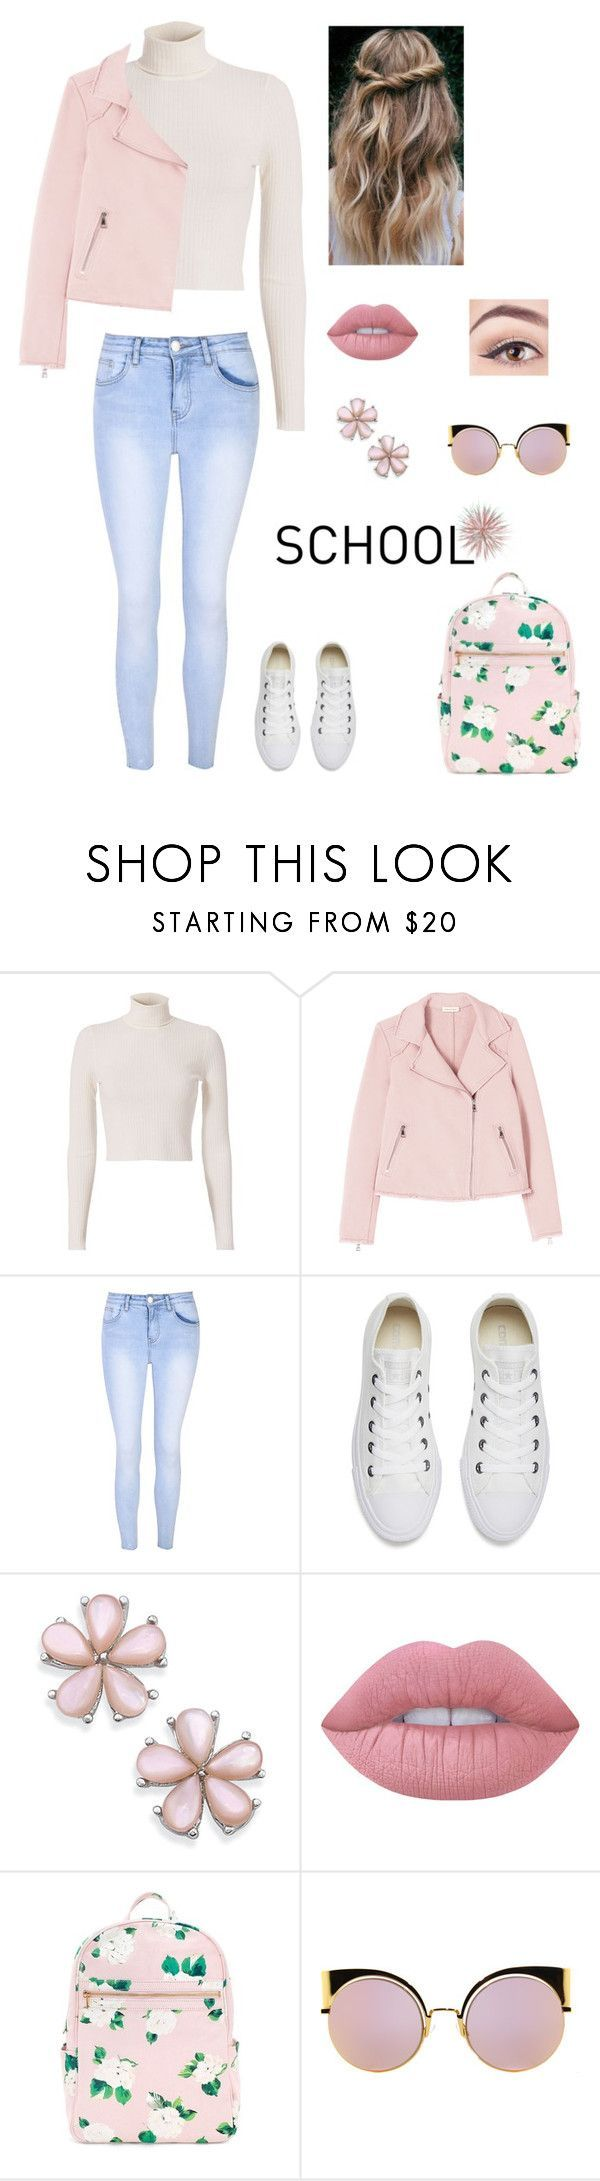 """""""School"""" by directionerand5sosfan ❤ liked on Polyvore featuring A.L.C., Glamorous, Converse, Lime Crime and Fendi"""